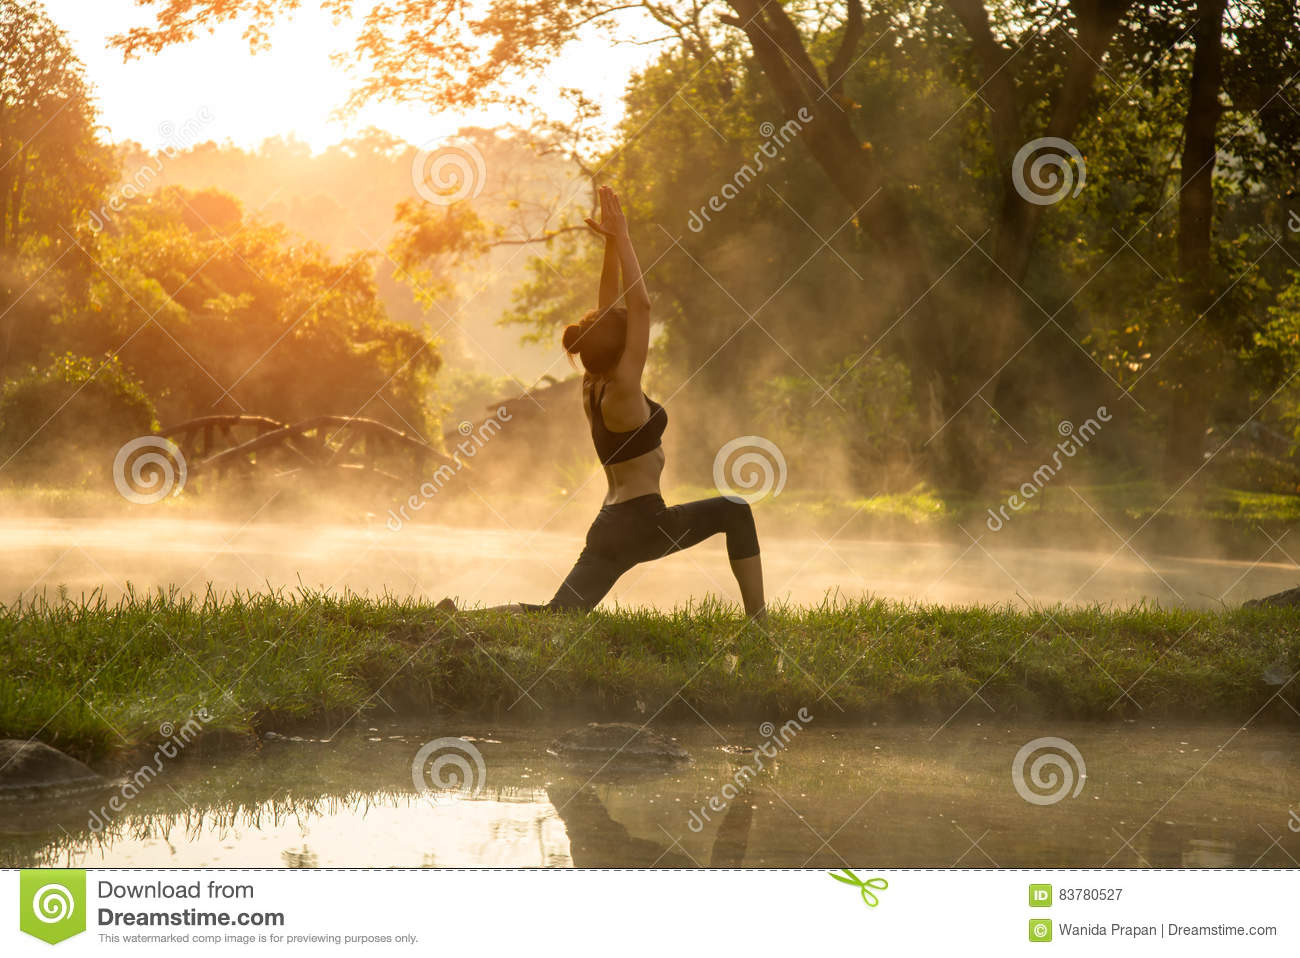 Download Beautiful Yoga Woman In The Morning At The Hot Spring Park Stock Image - Image of adult, healthy: 83780527